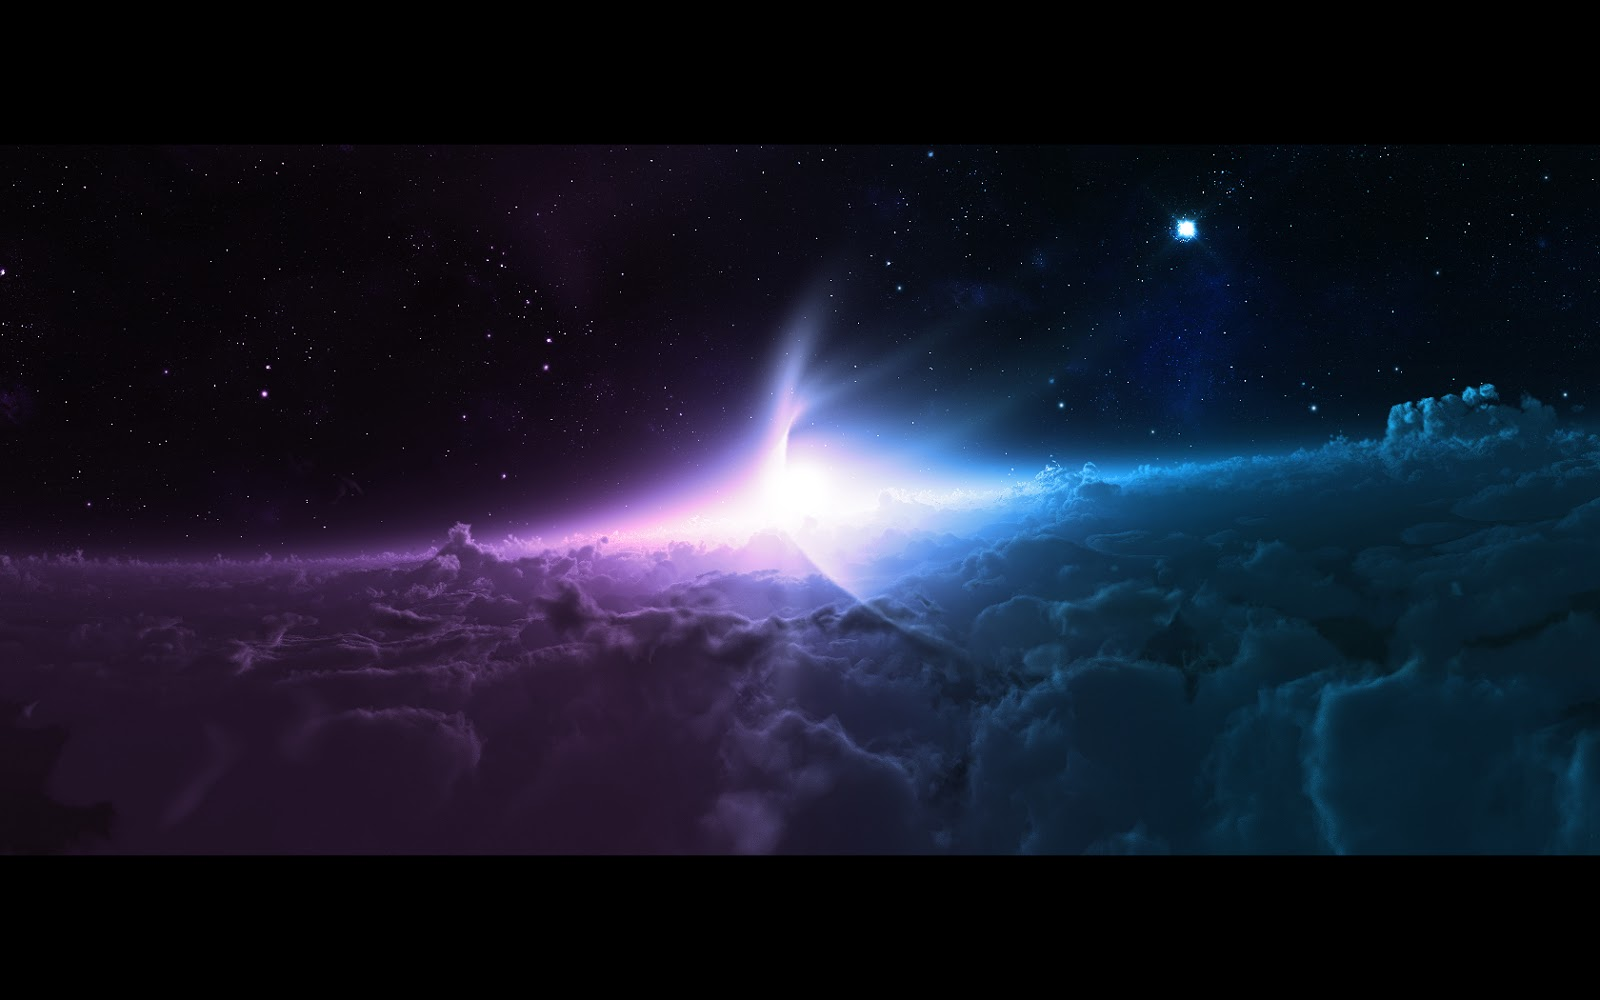 Amazing 3d Car Wallpapers Pictures Of Beauty 30 Breathtaking Space Art Pics